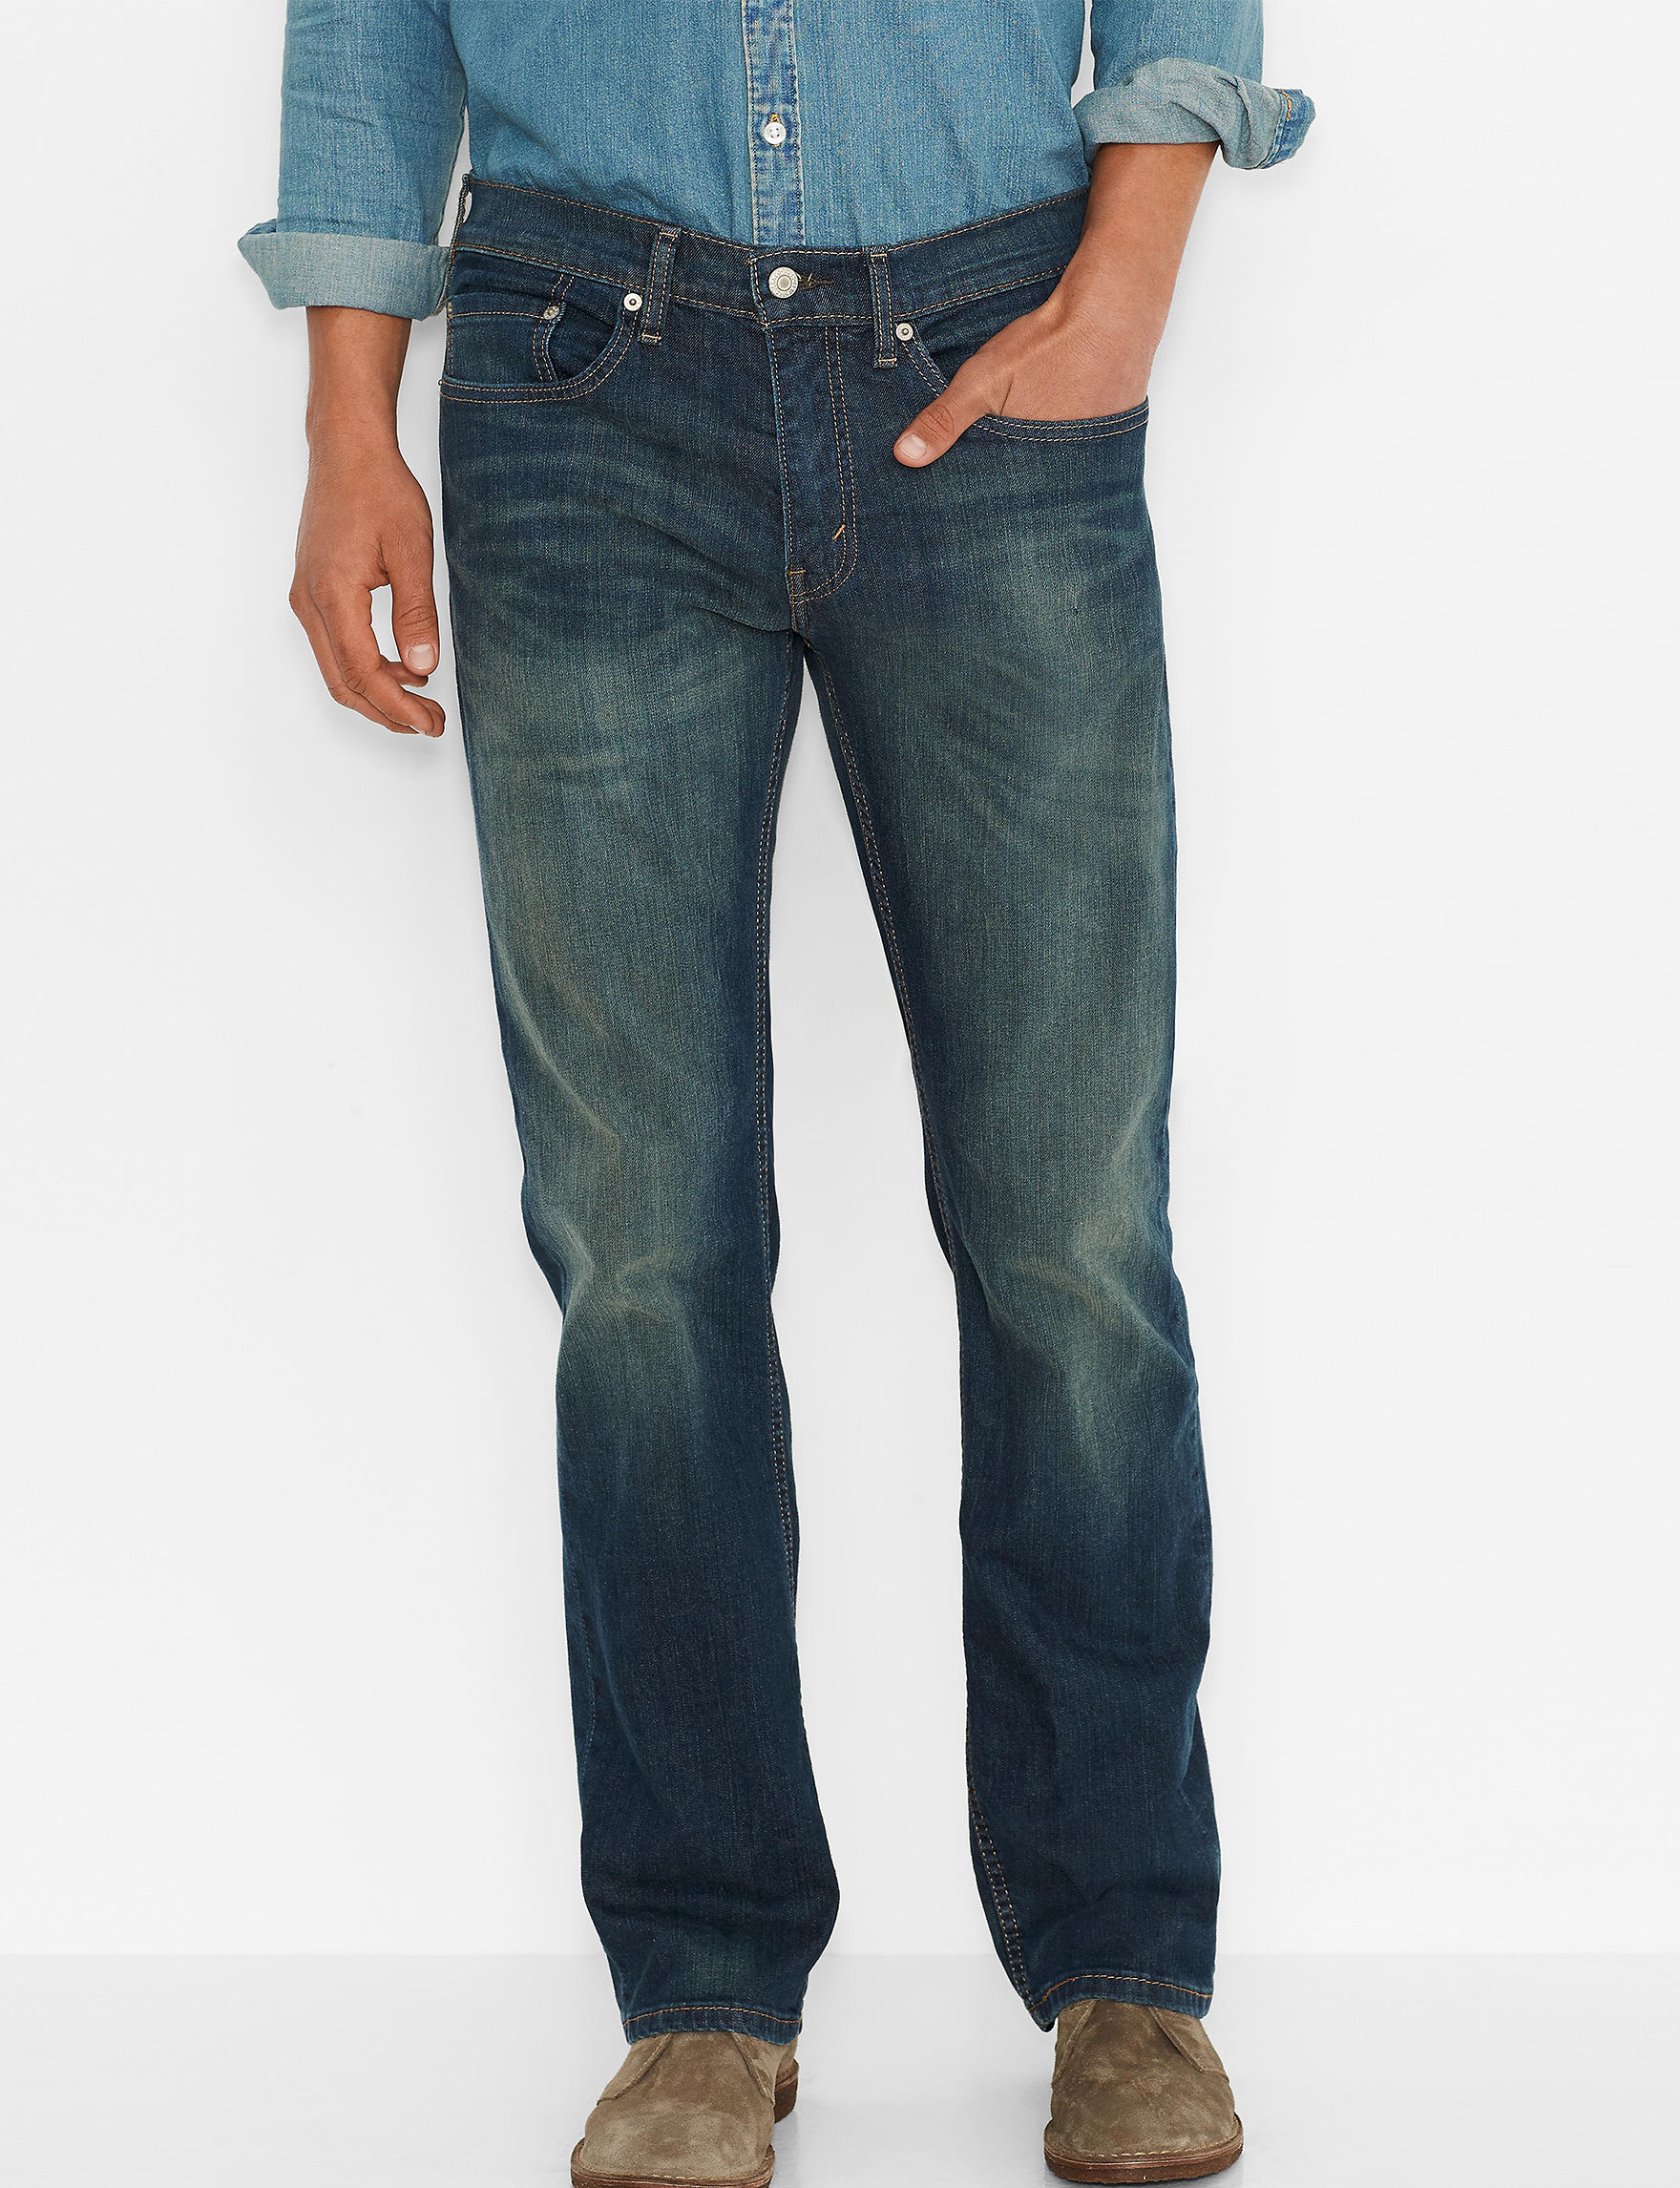 Levi's Light Wash Relaxed Straight